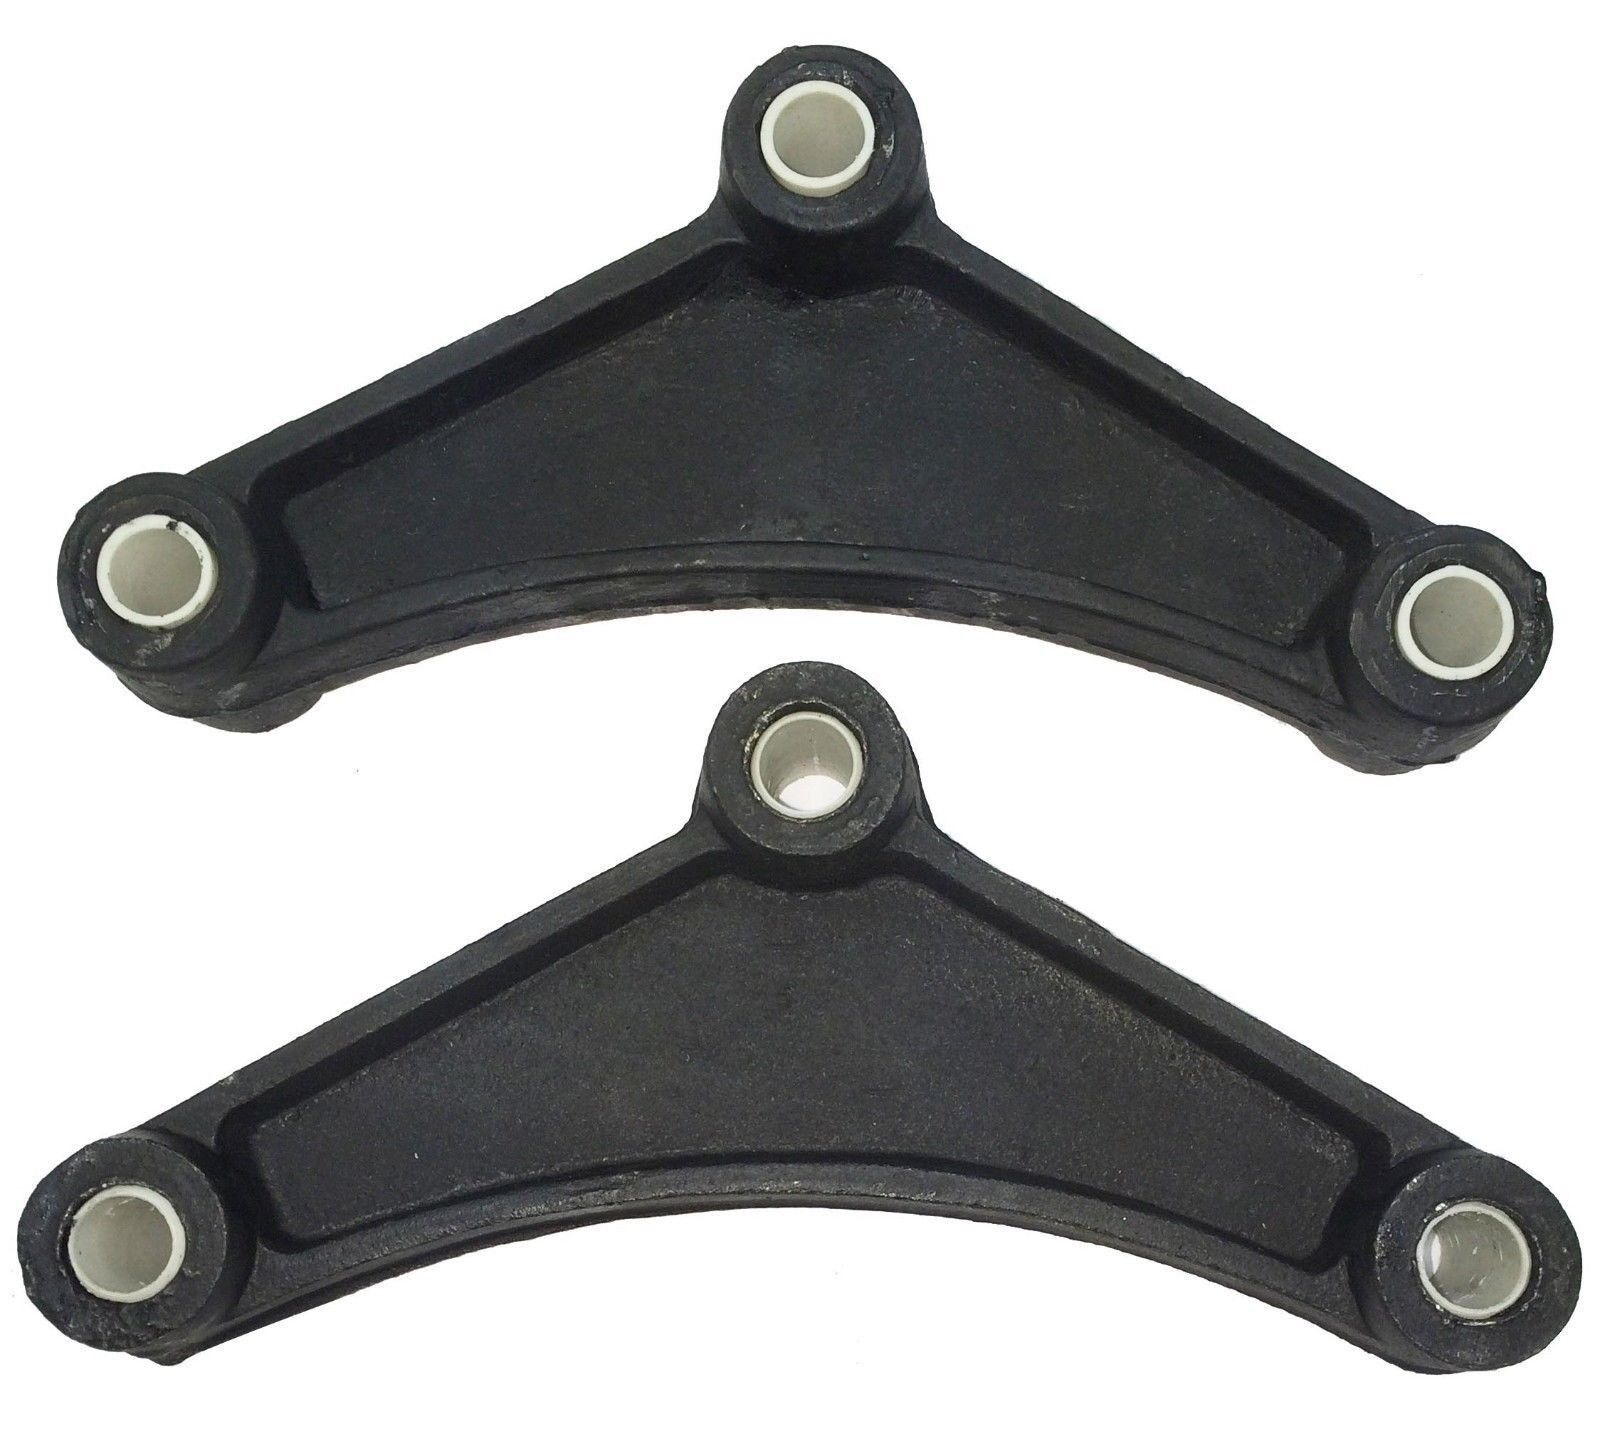 "2 New Trailer Leaf Spring Equalizers With 9/16"" Nylon Bushings - 23029"